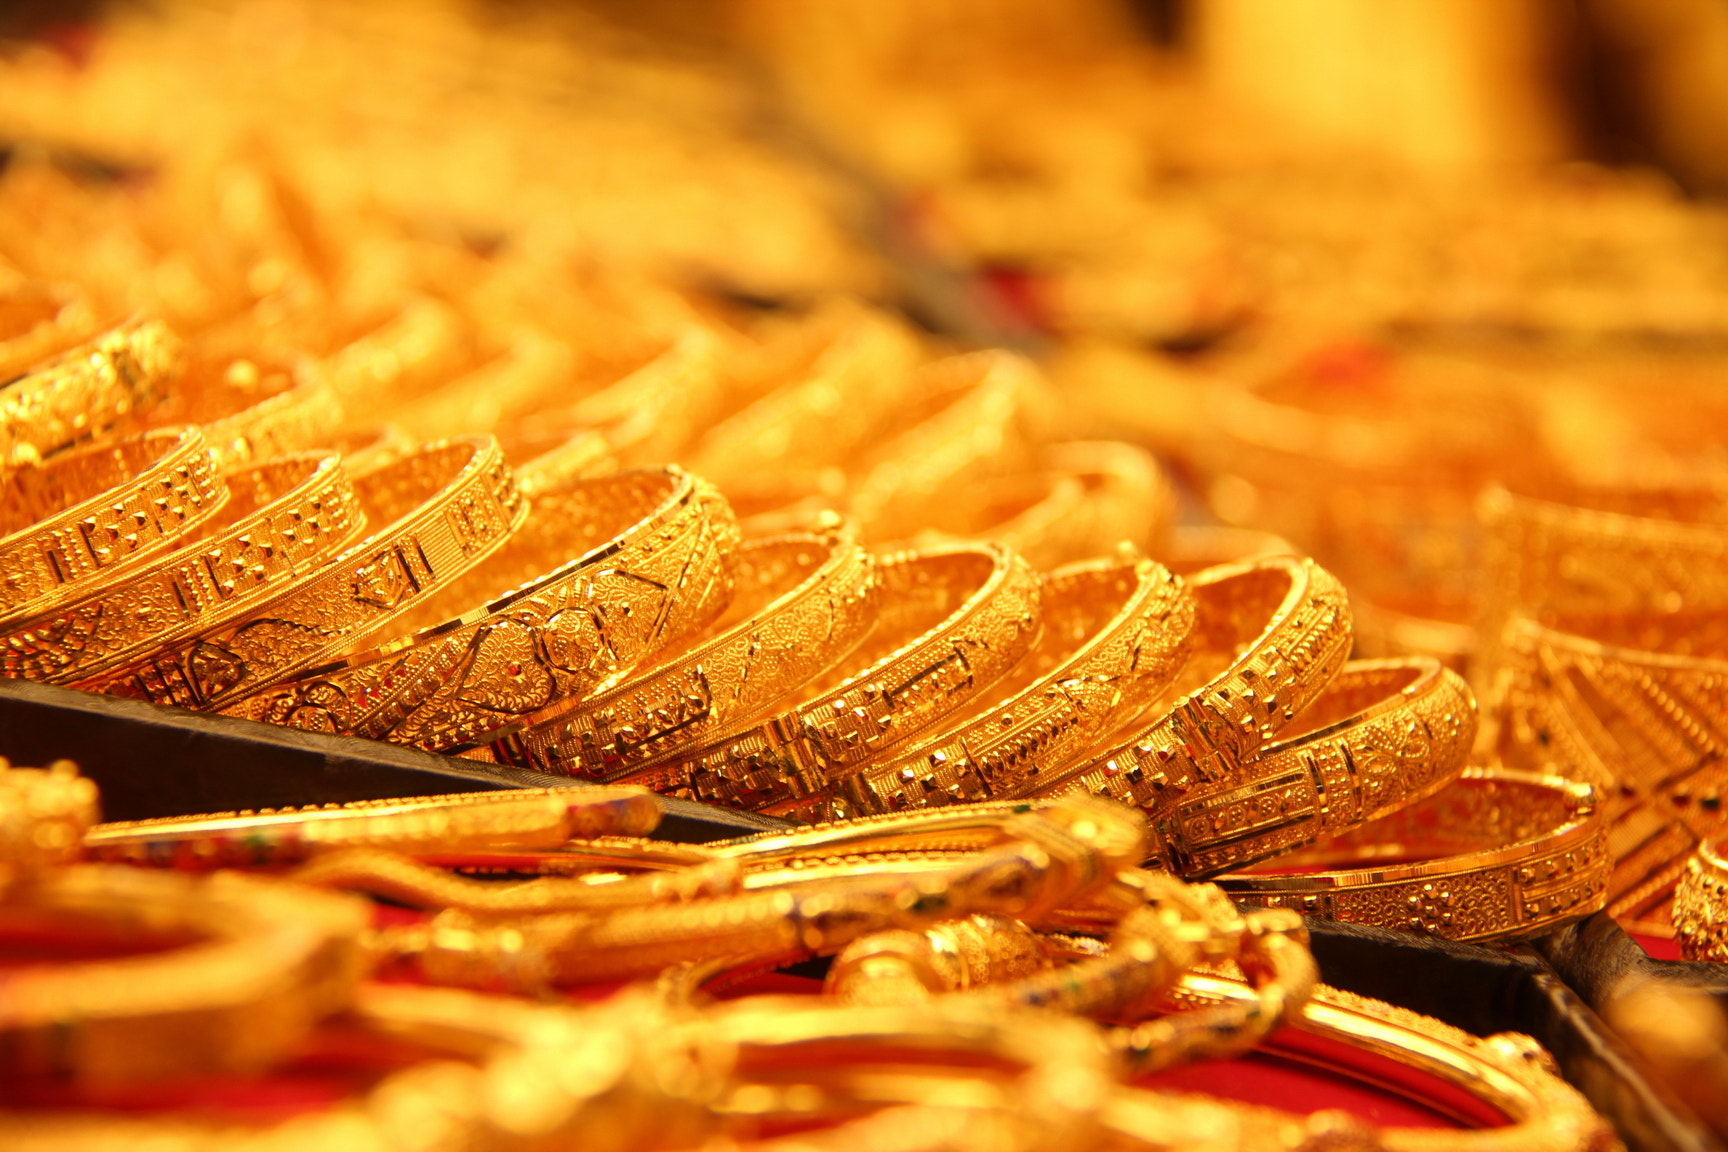 Photograph Gold ring by Pasiban ISMAIL on 500px